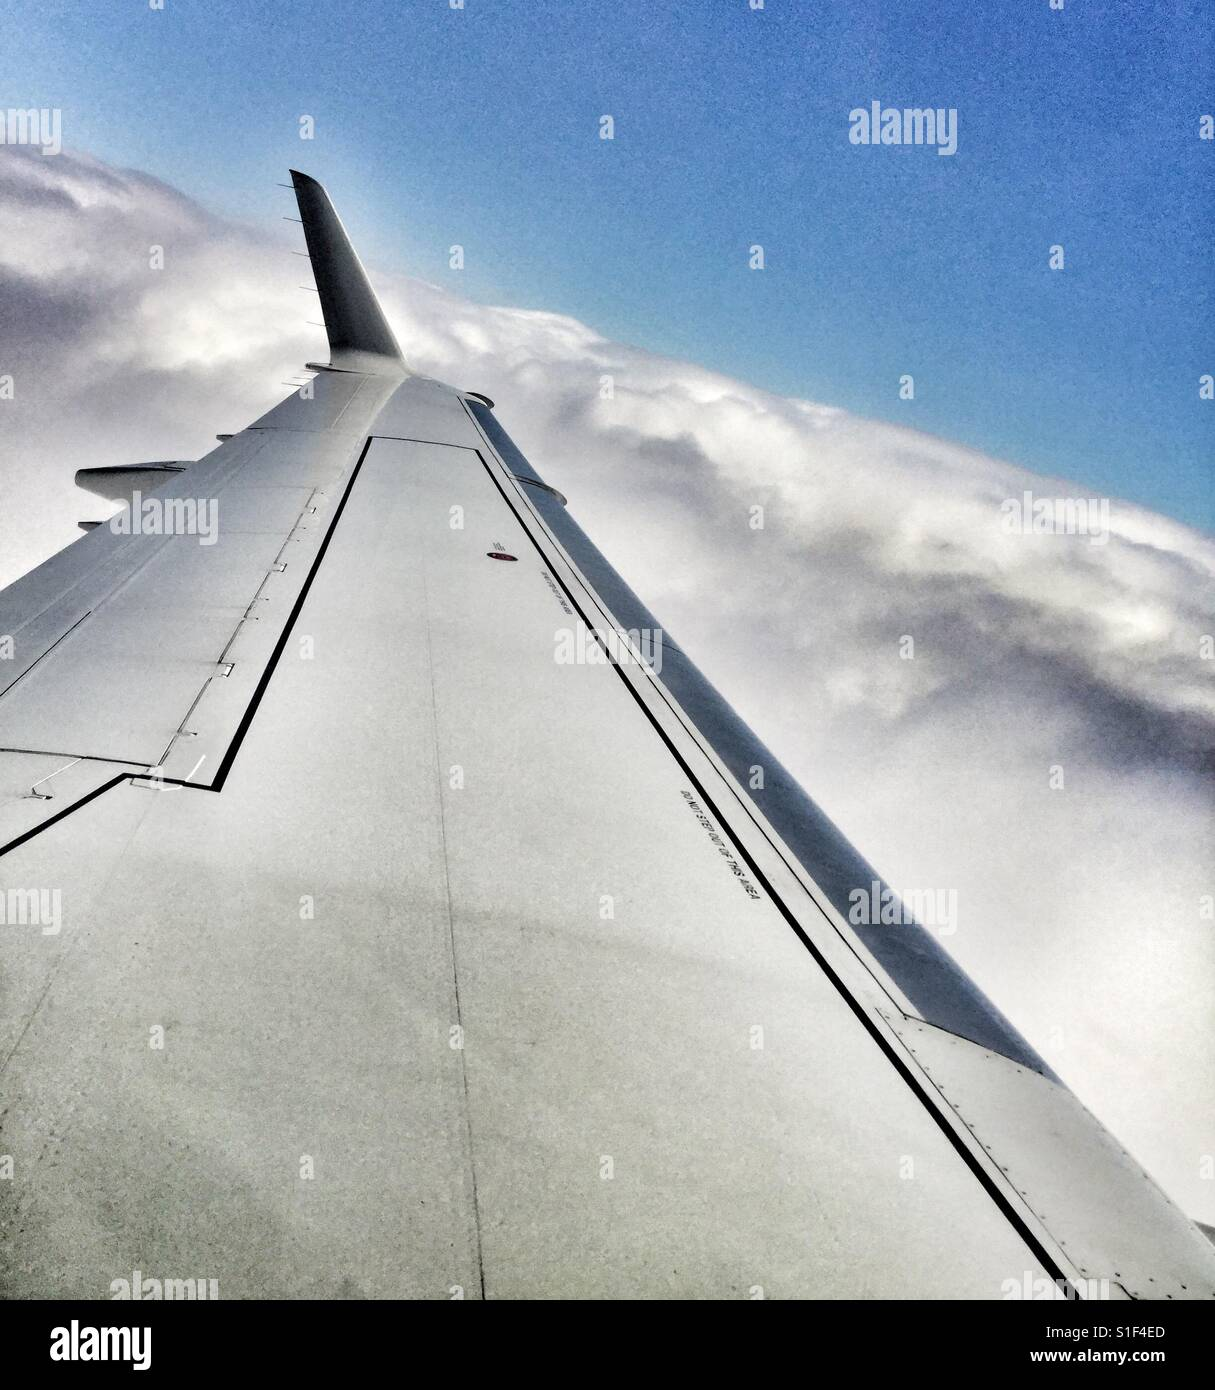 Flying into the clouds. - Stock Image